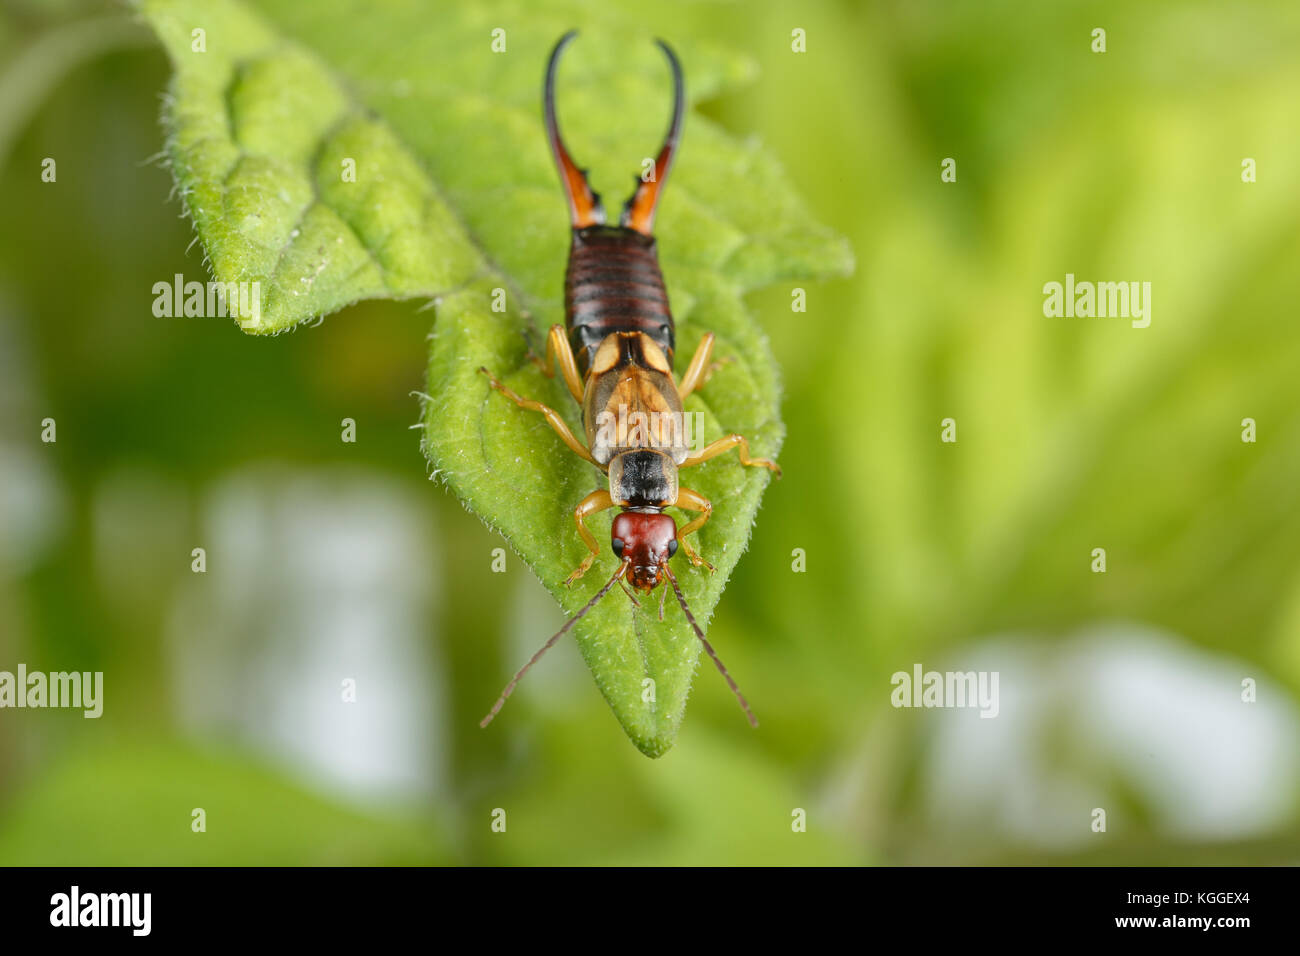 Aphids Tomato Stock Photos & Aphids Tomato Stock Images - Alamy